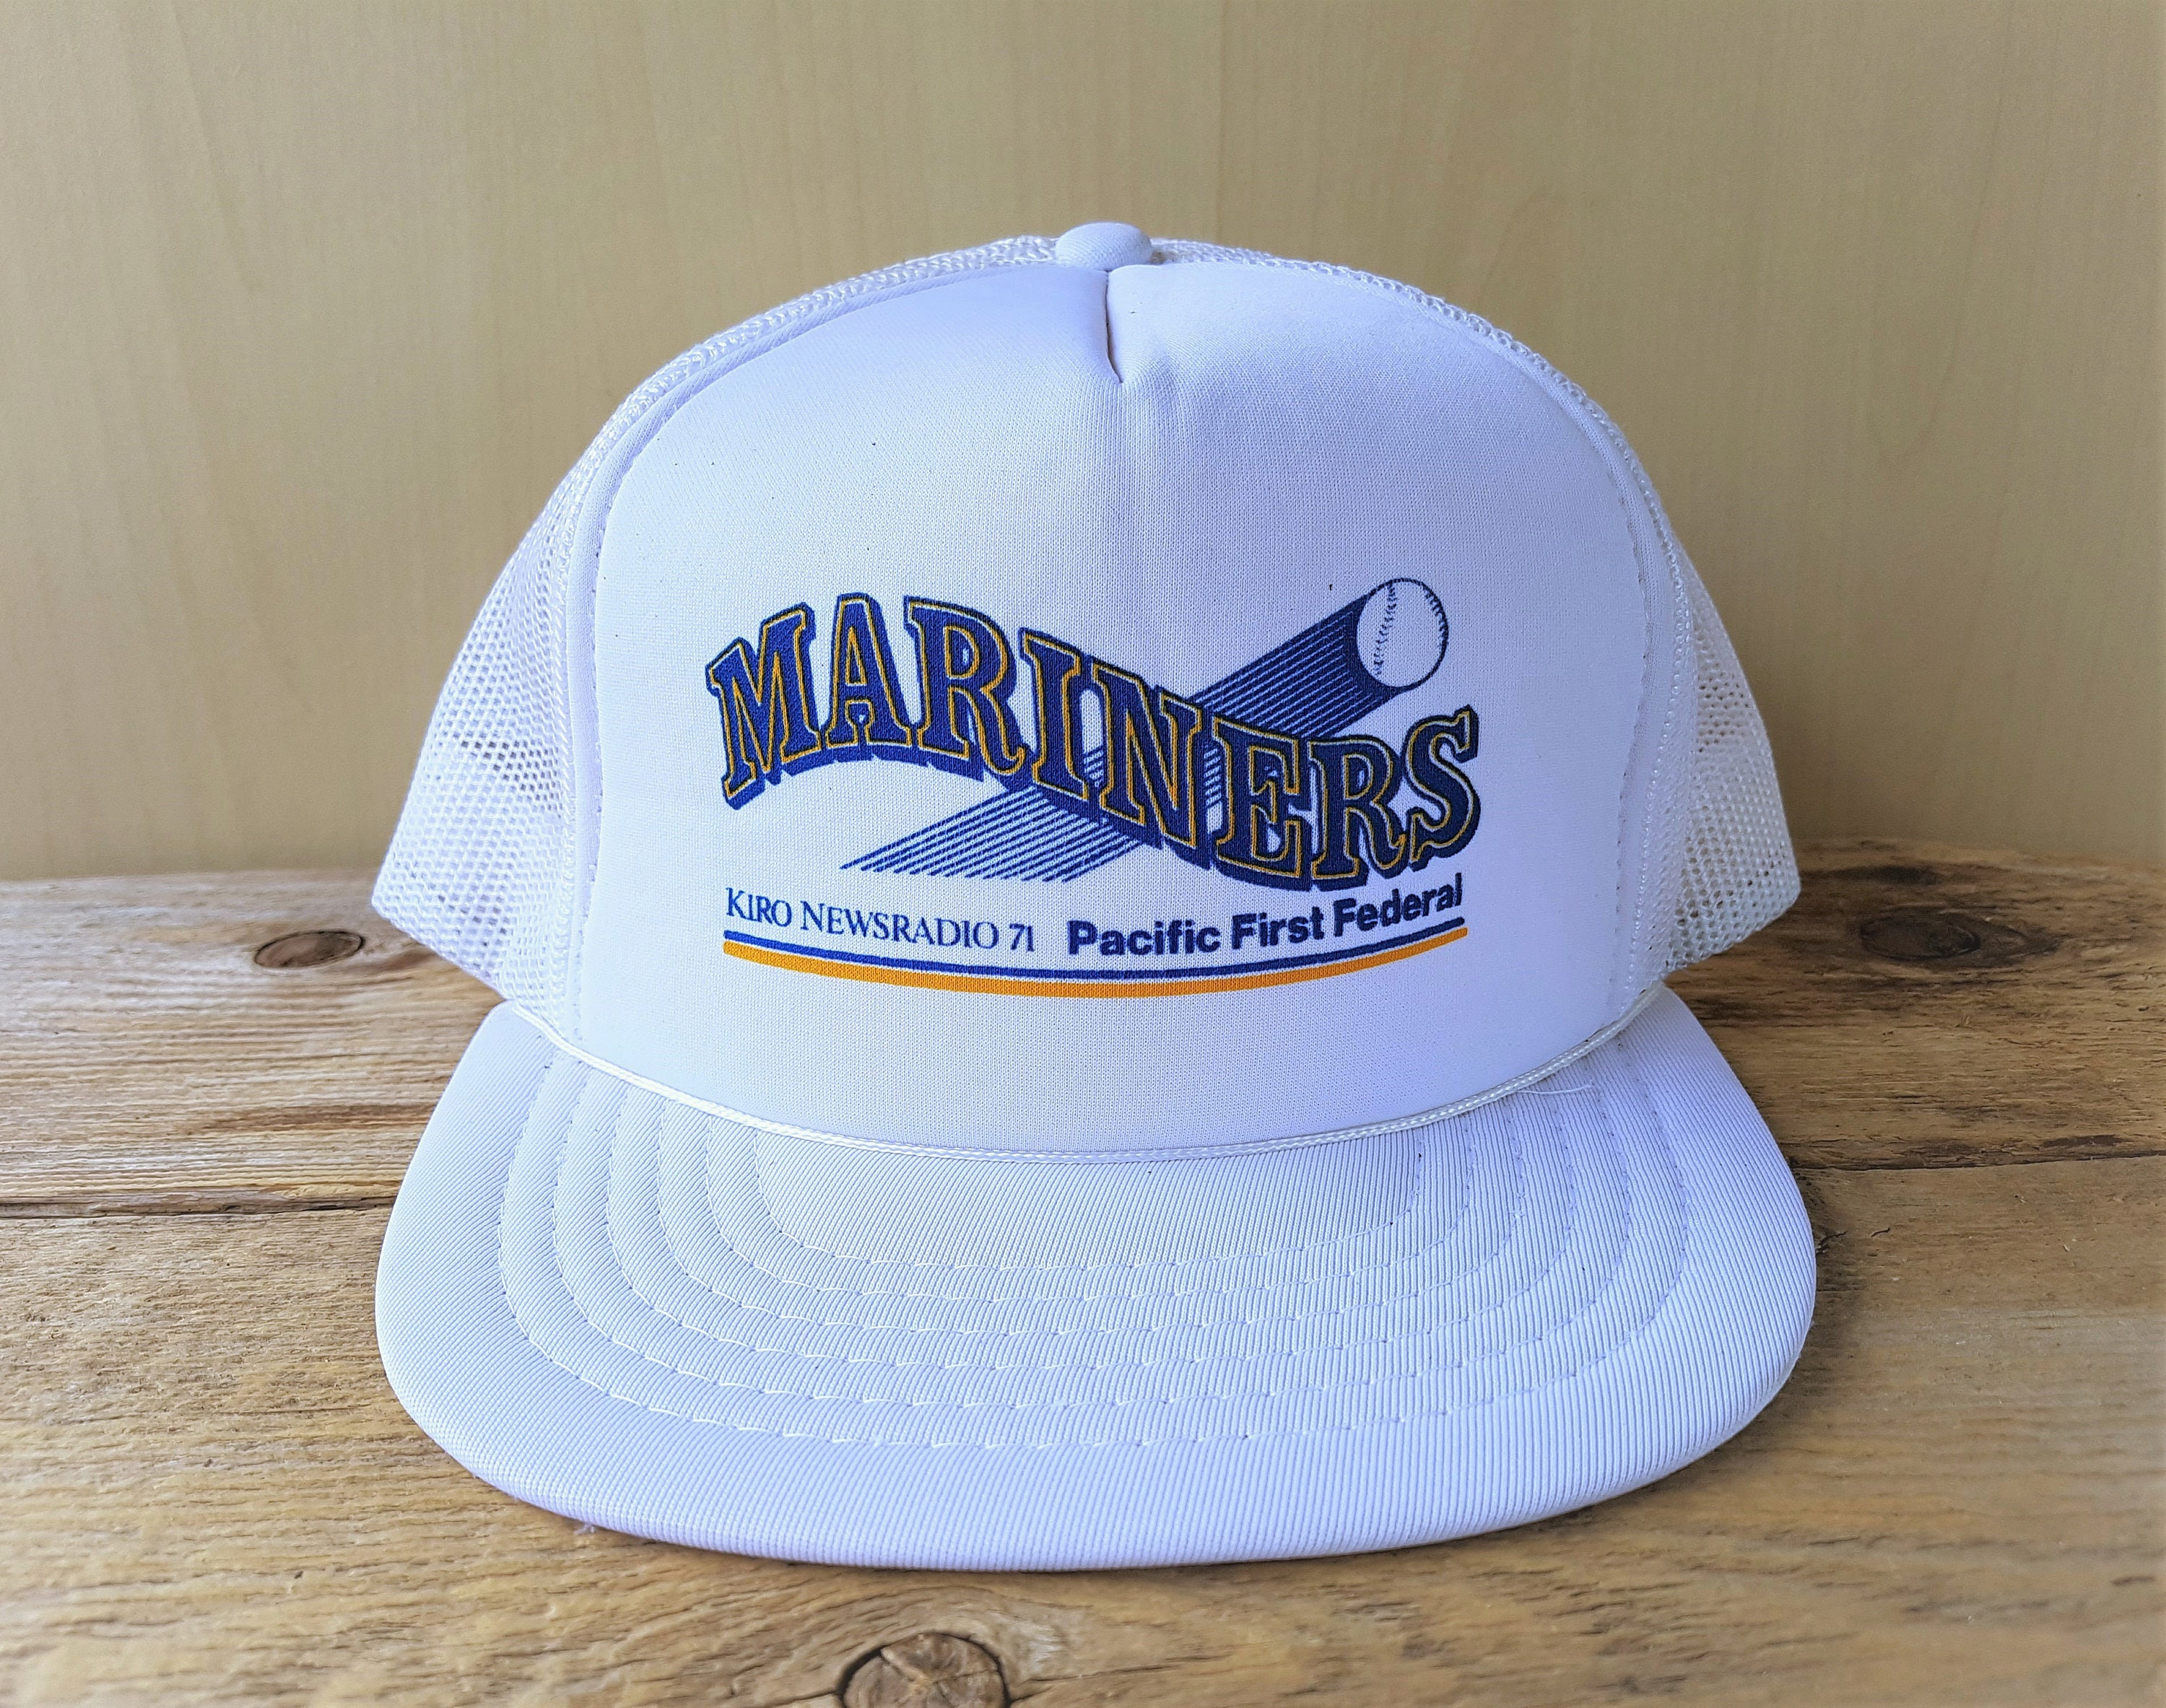 bf7bf7c118eaa ... reduced seattle mariners original vintage 80s trucker snapback hat kiro  newsradio 71 pacific first federal savings